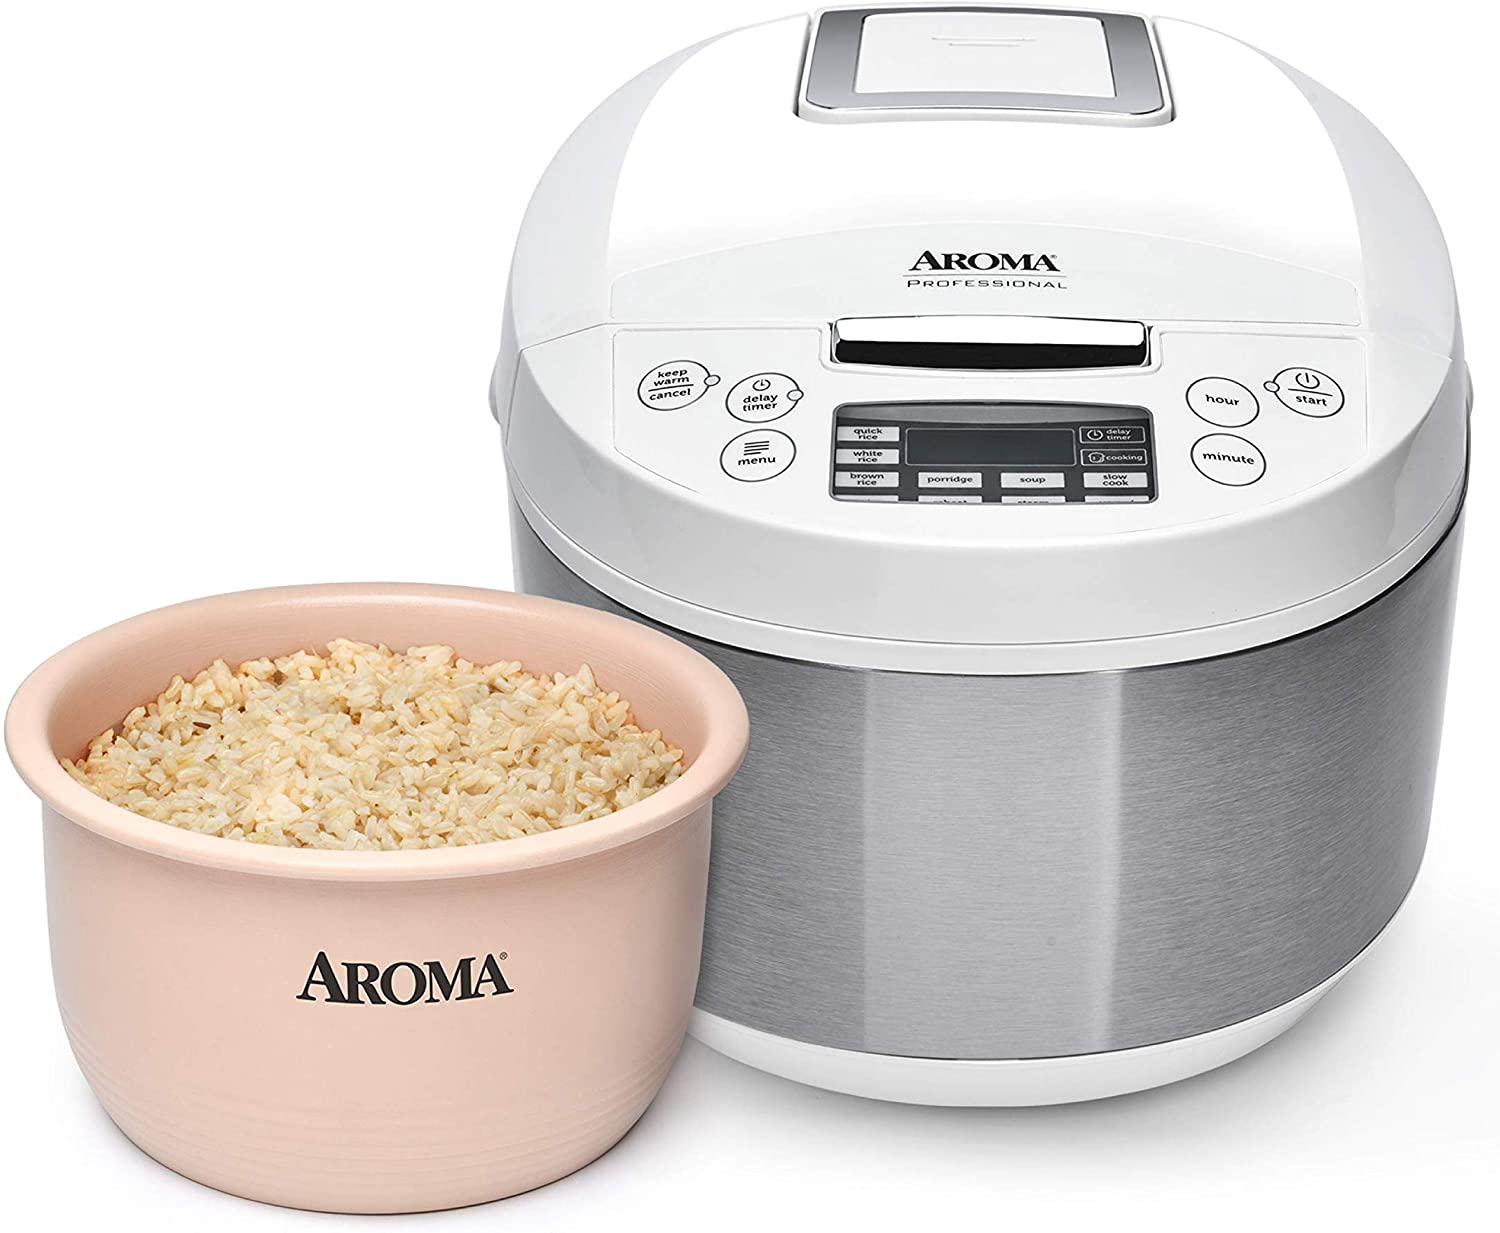 Aroma Housewares ARC-6206C Professional Digital Rice Cooker & Multicooker with Ceramic Inner Pot, Steam Basket Included, 12-Cup cooked / 4Qt, White